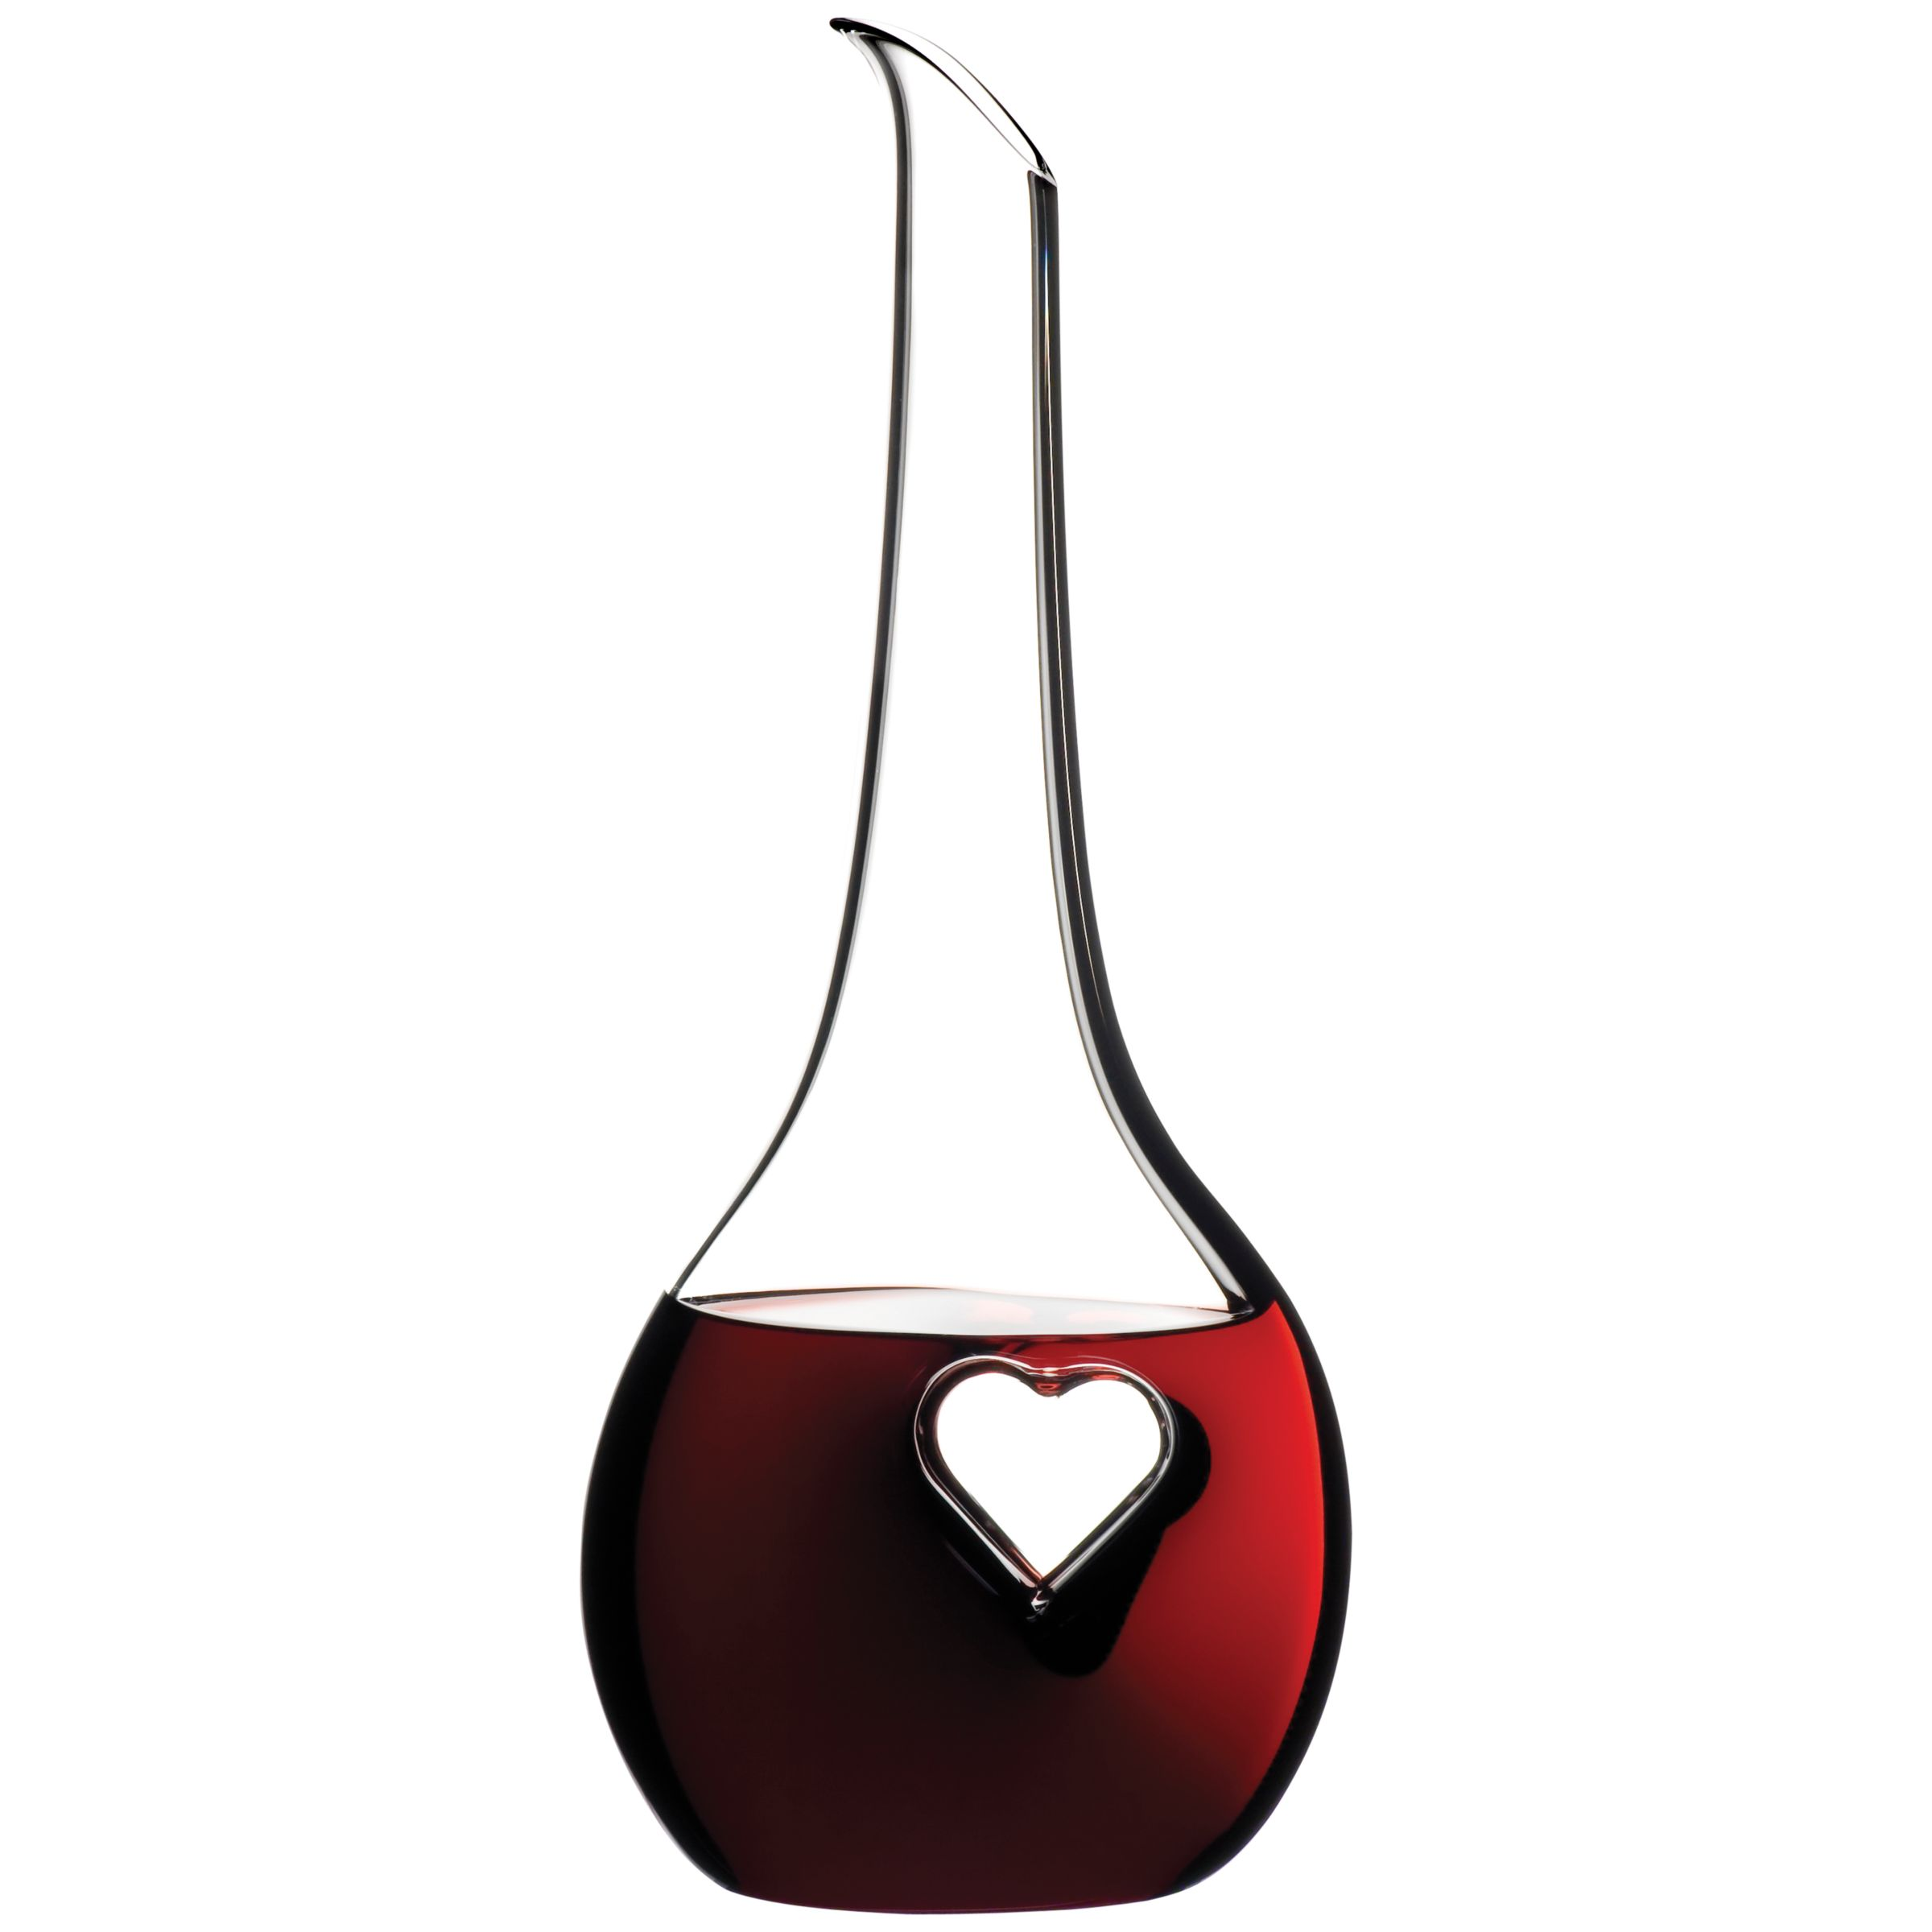 Riedel Riedel Black Tie Bliss Decanter